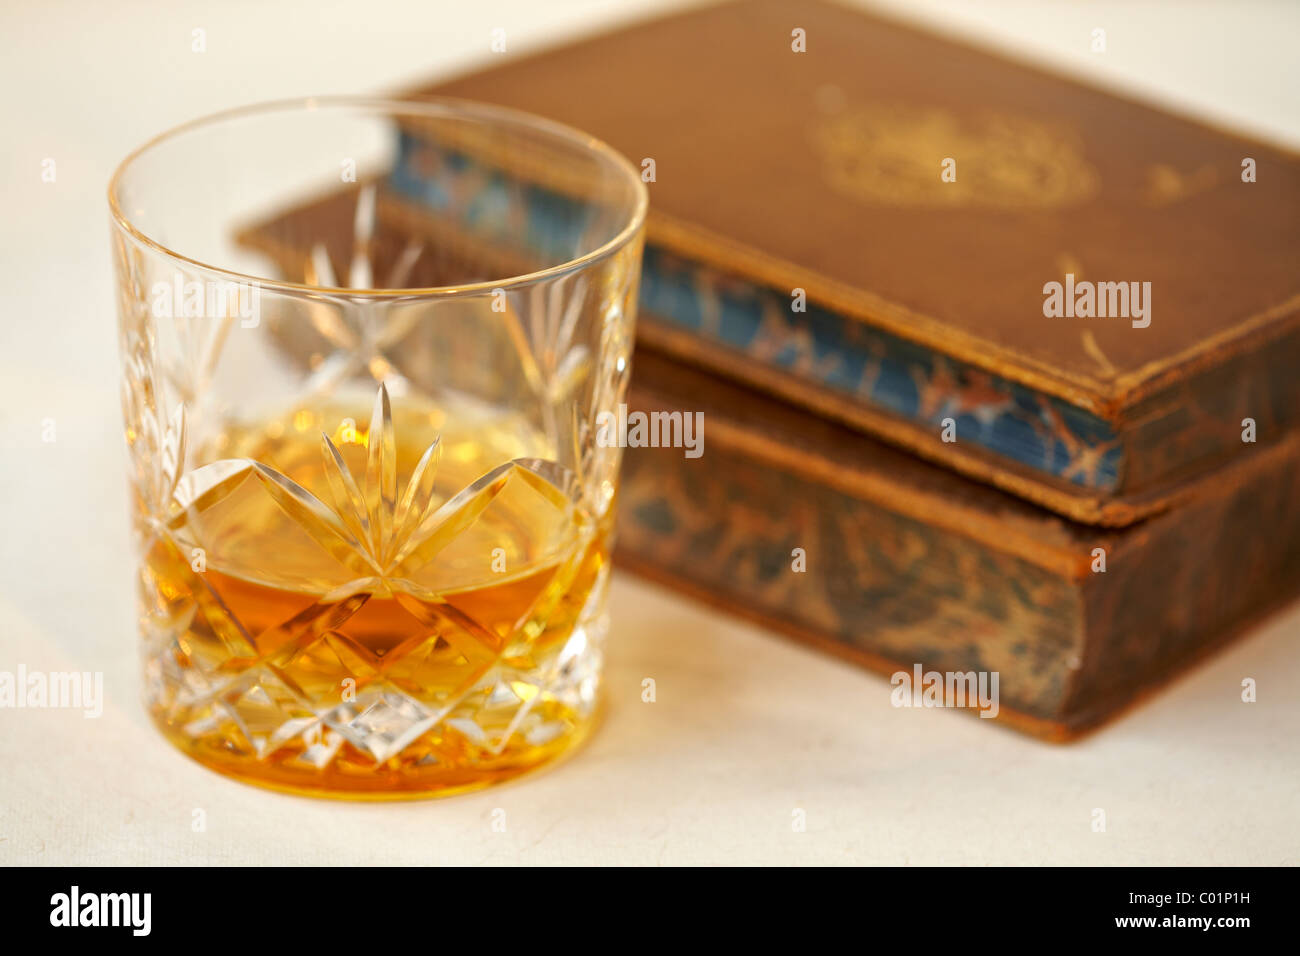 Glass of  malt whisky and old antique books - Stock Image